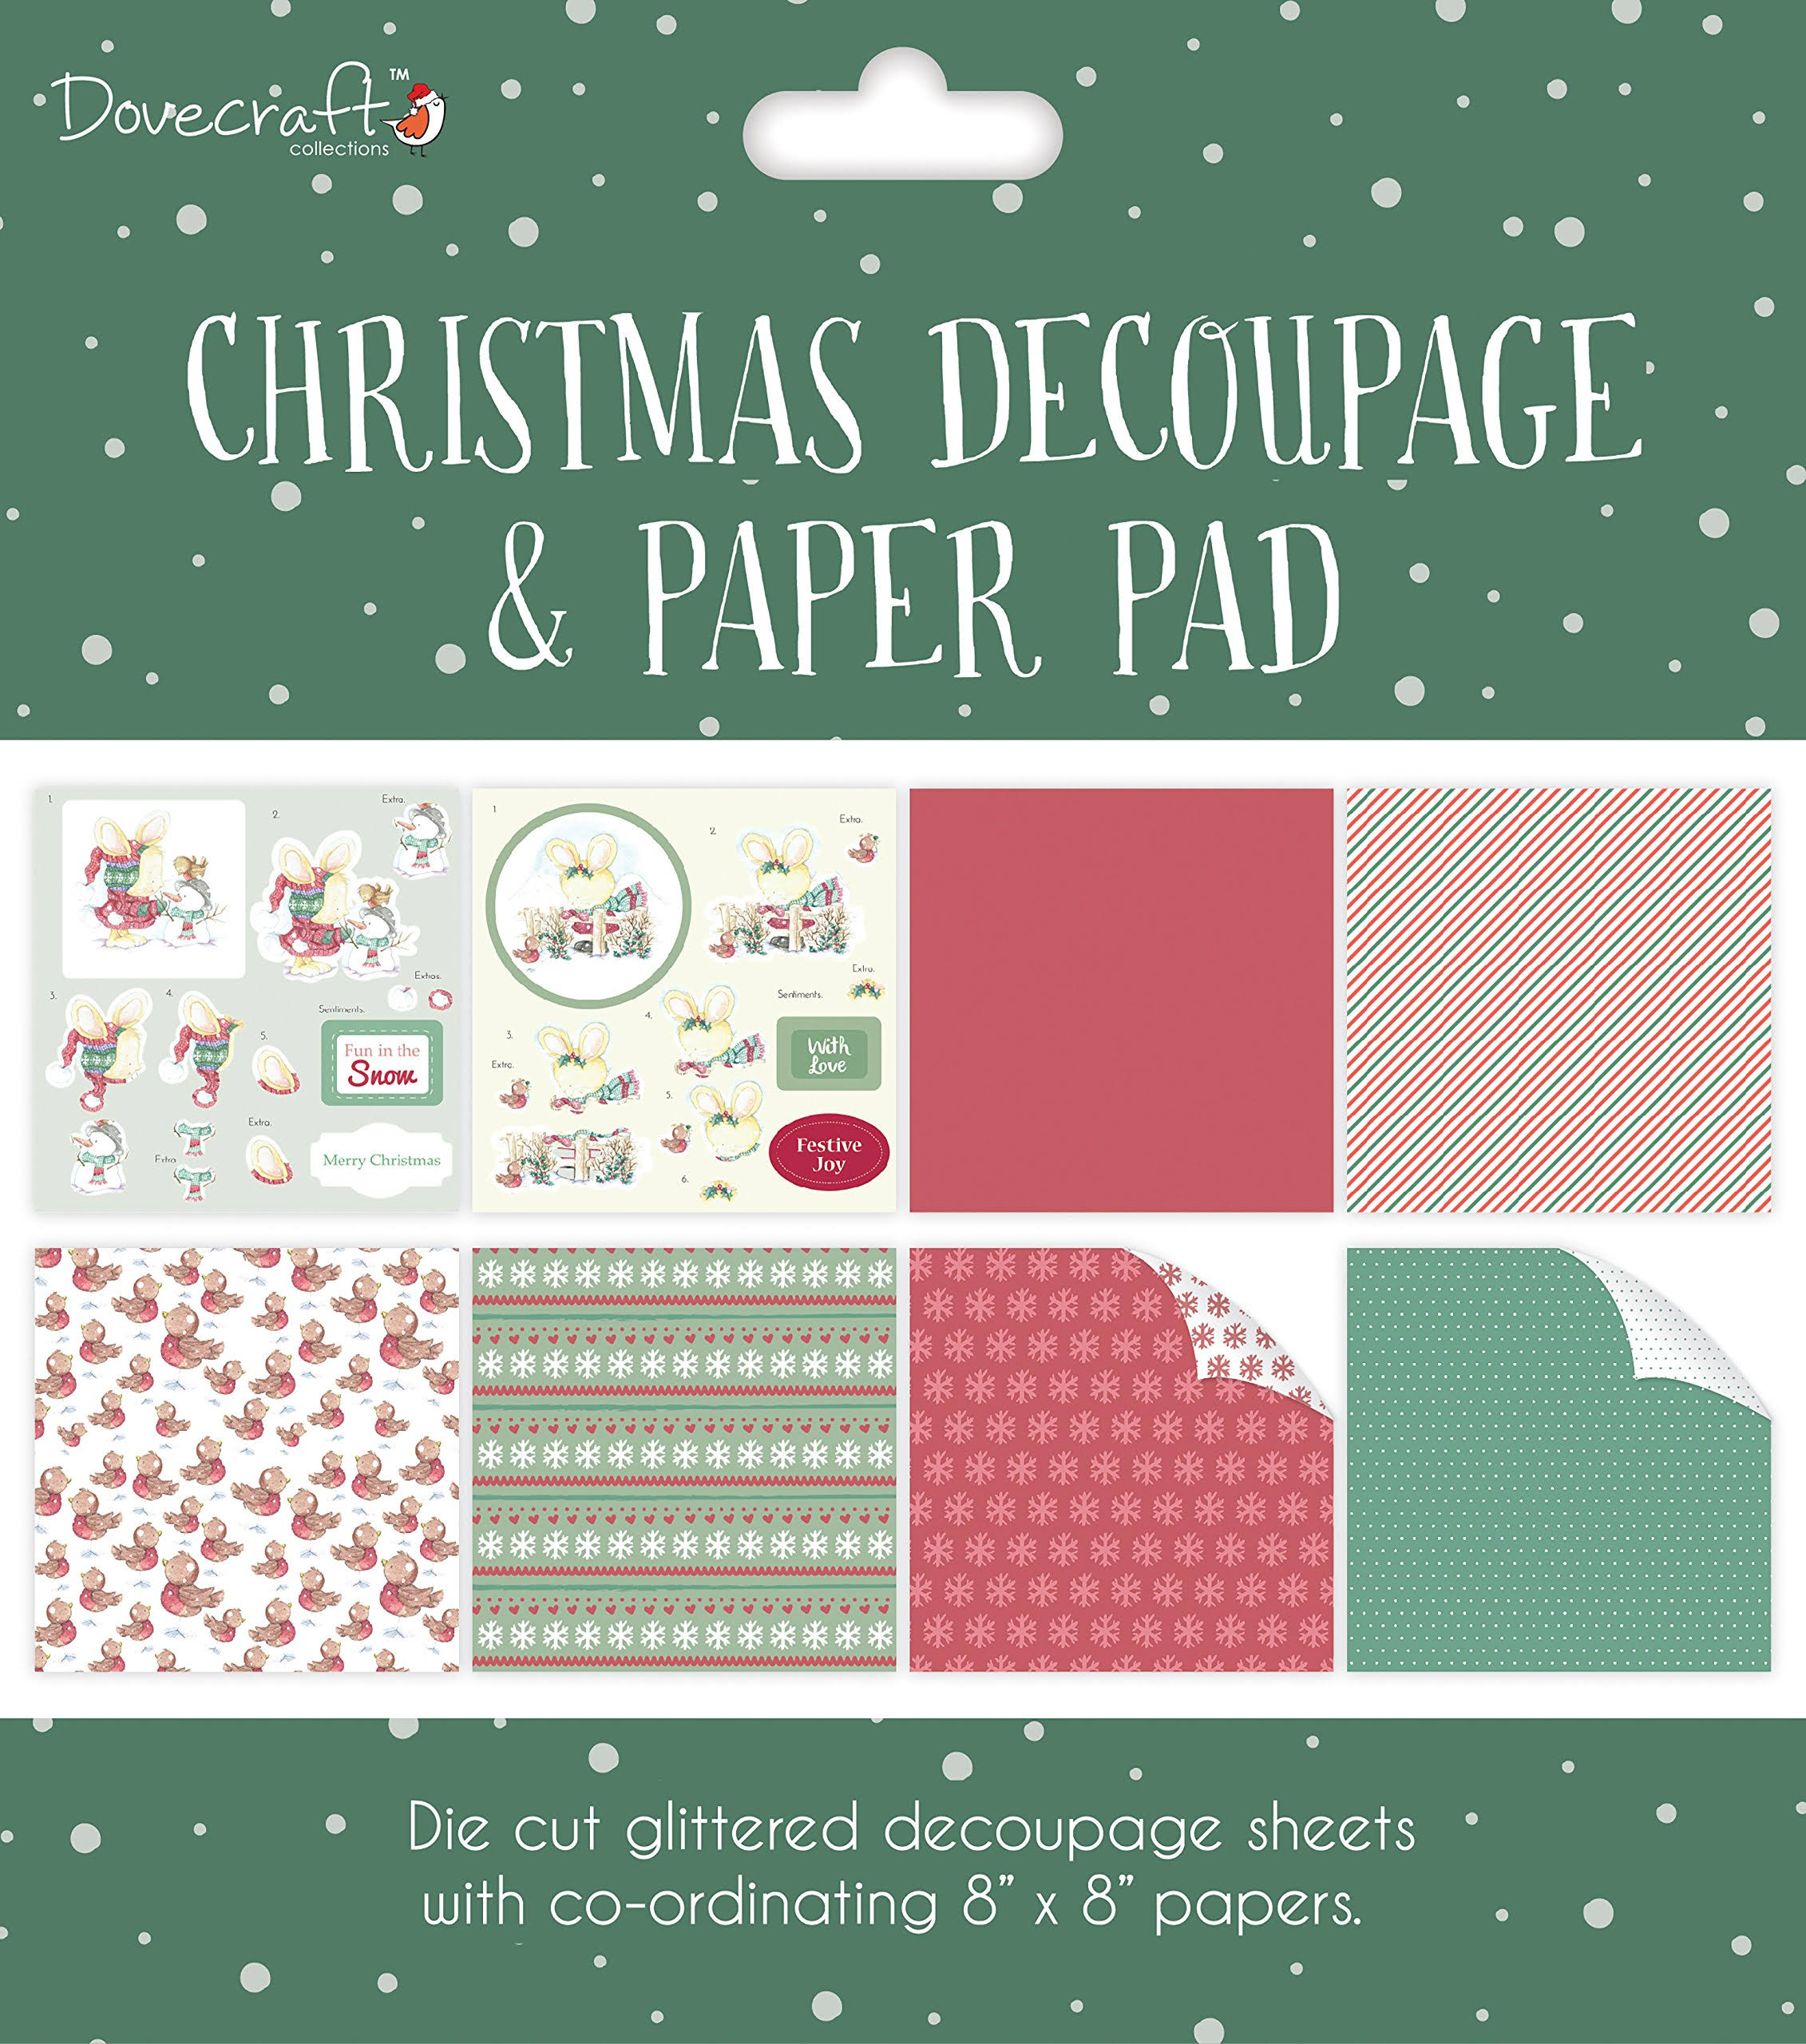 Dovecraft Christmas Decoupage Pad - Green